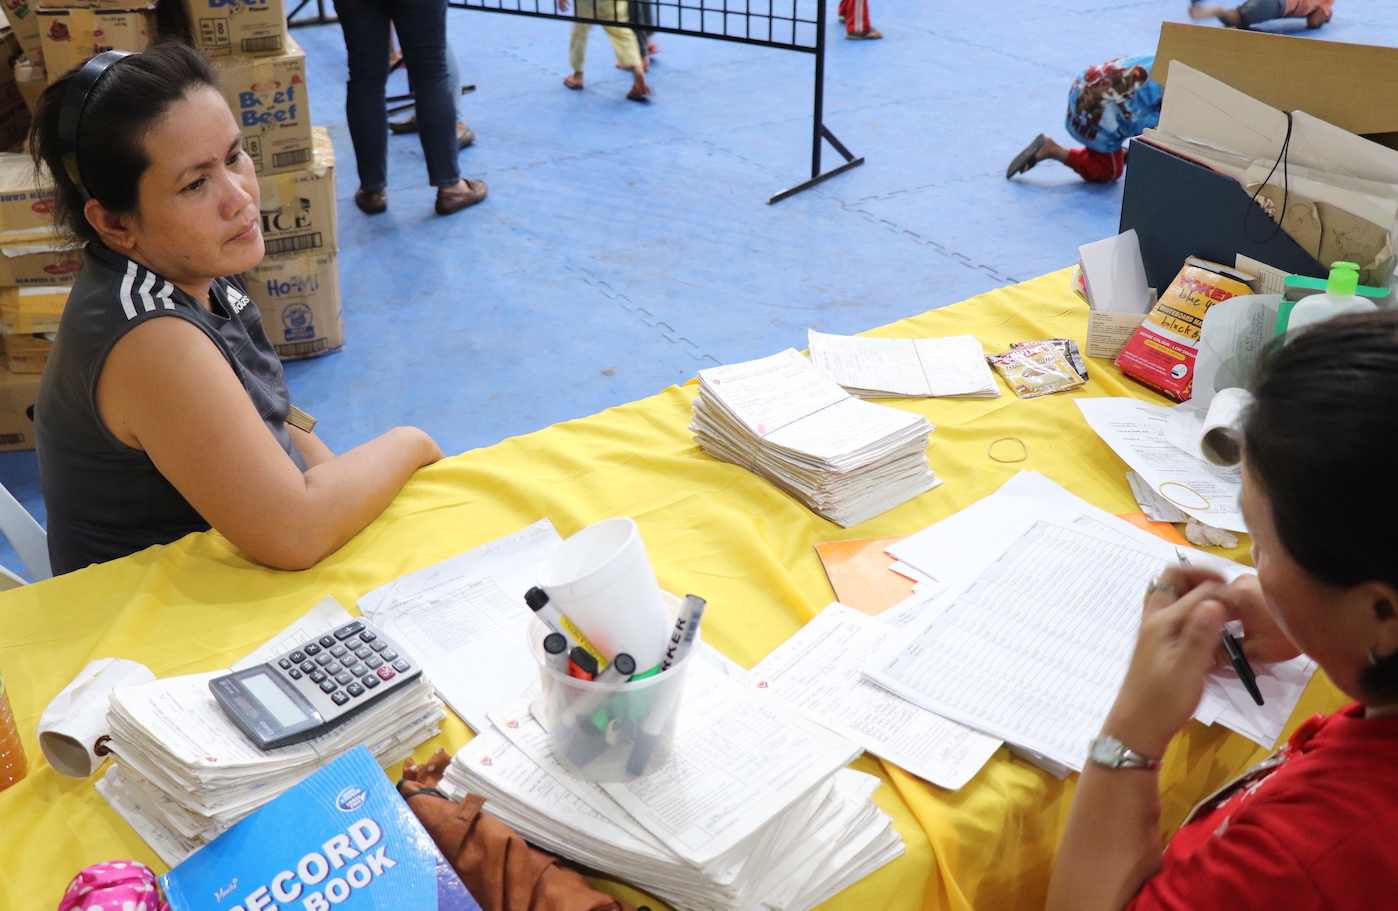 Flordeliza Lapitan (left), a 43-year-old mother of two, consults with a health worker at the Enan Chiong Activity Center regarding her son Jack's stomachache. The Lapitans are among hundreds of families in Naga City displaced by the massive landslide that struck Barangays Naalad and Tinaan on September 20.